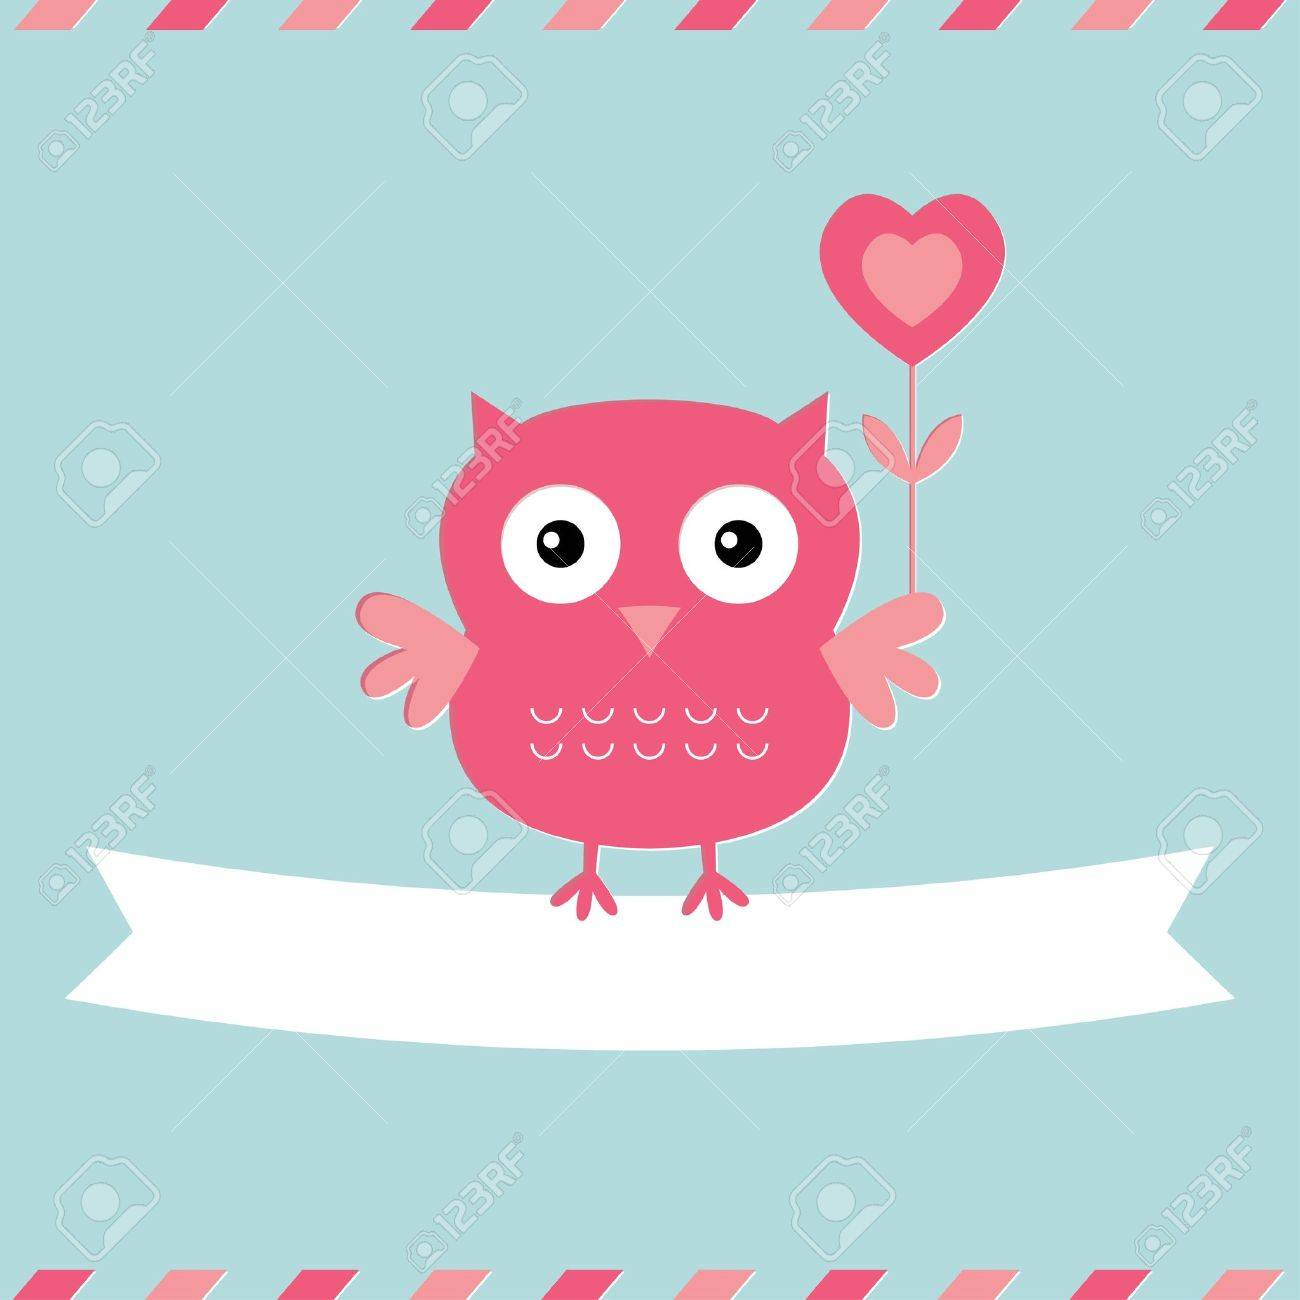 Cute Owl Valentine S Day Card Royalty Free Cliparts Vectors And – Owl Valentines Day Cards